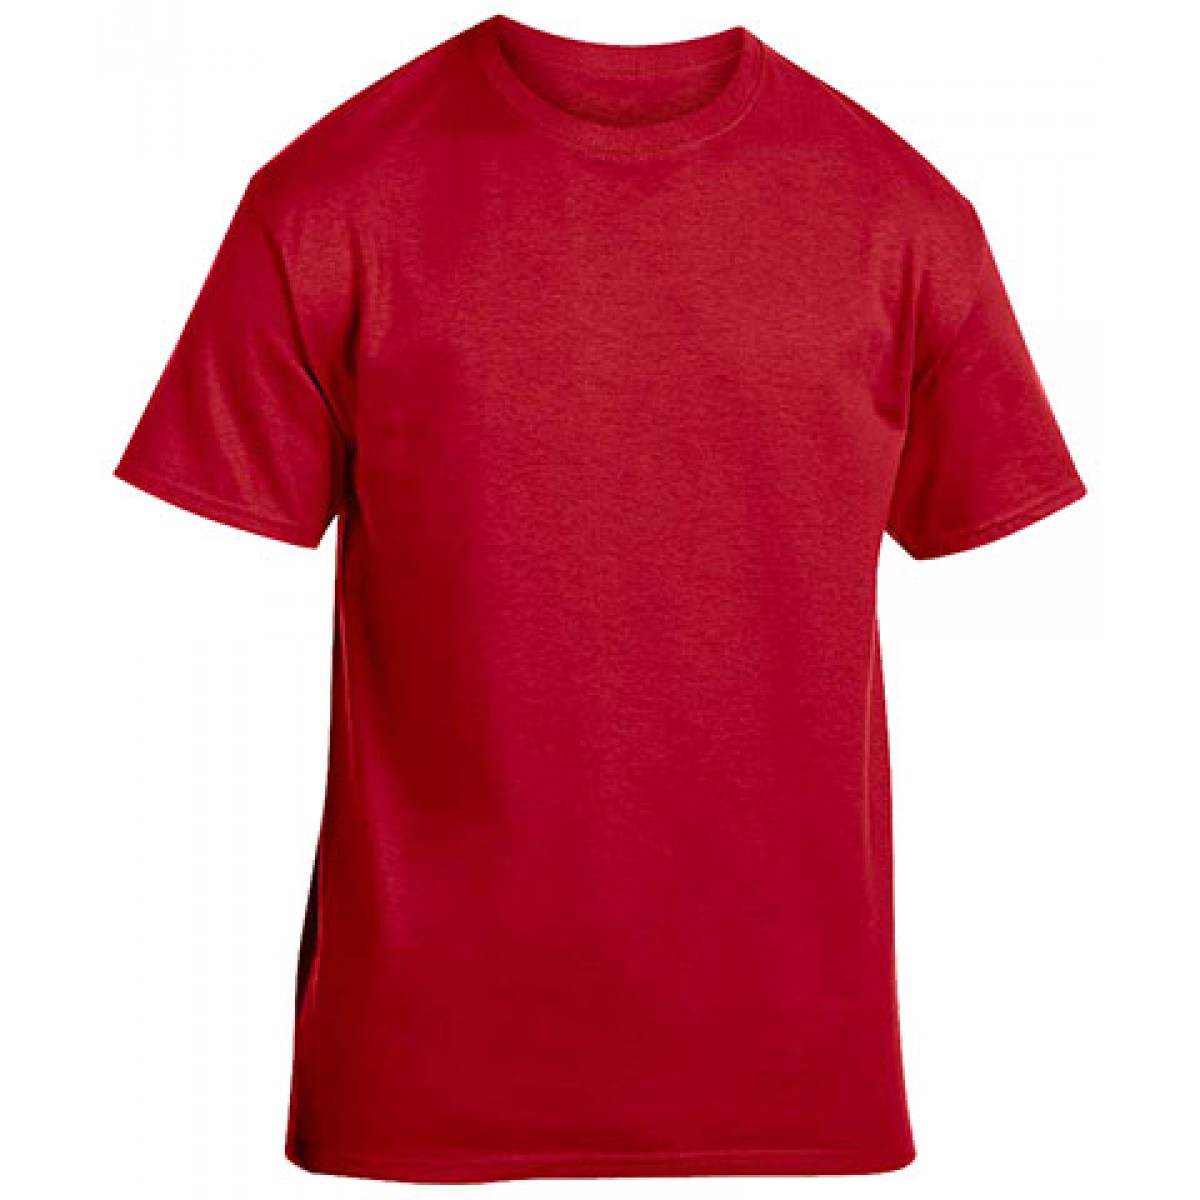 Cotton Short Sleeve T-Shirt-Cardinal Red-M